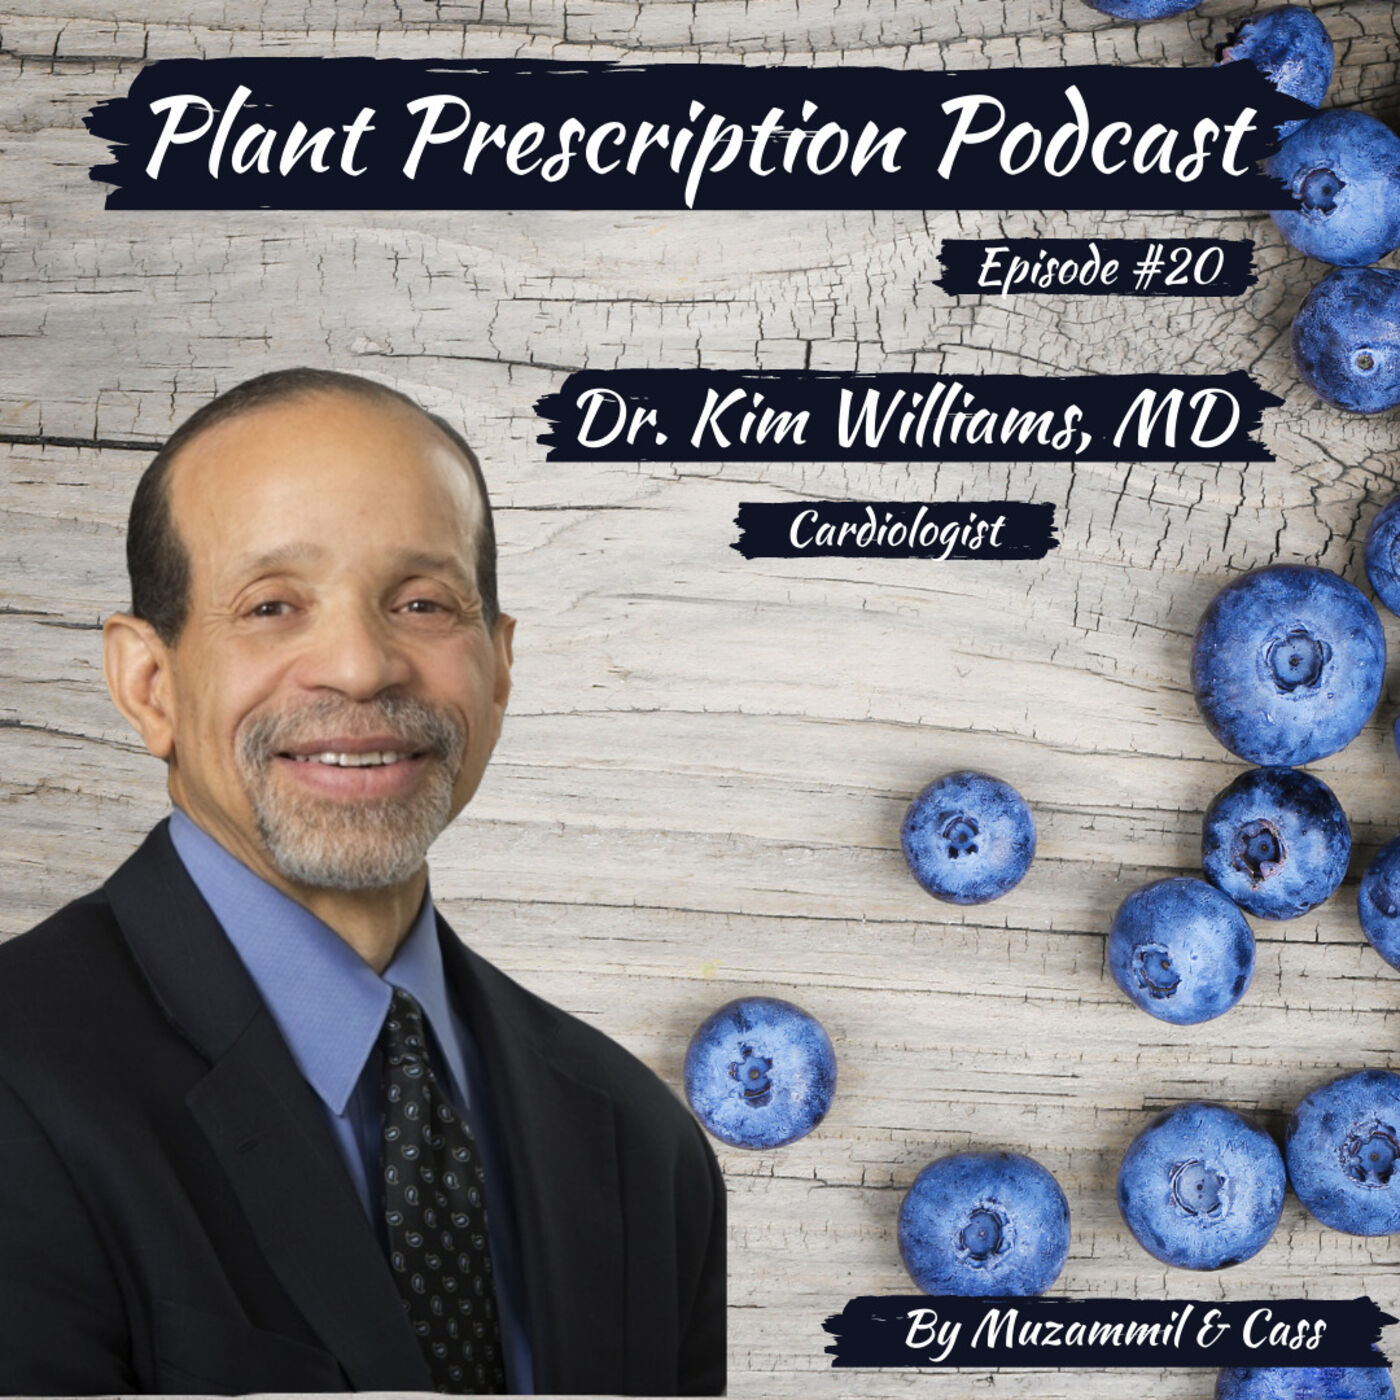 Nutrition and Heart Disease with a cardiologist and former president of American College of Cardiology, Dr. Kim Williams